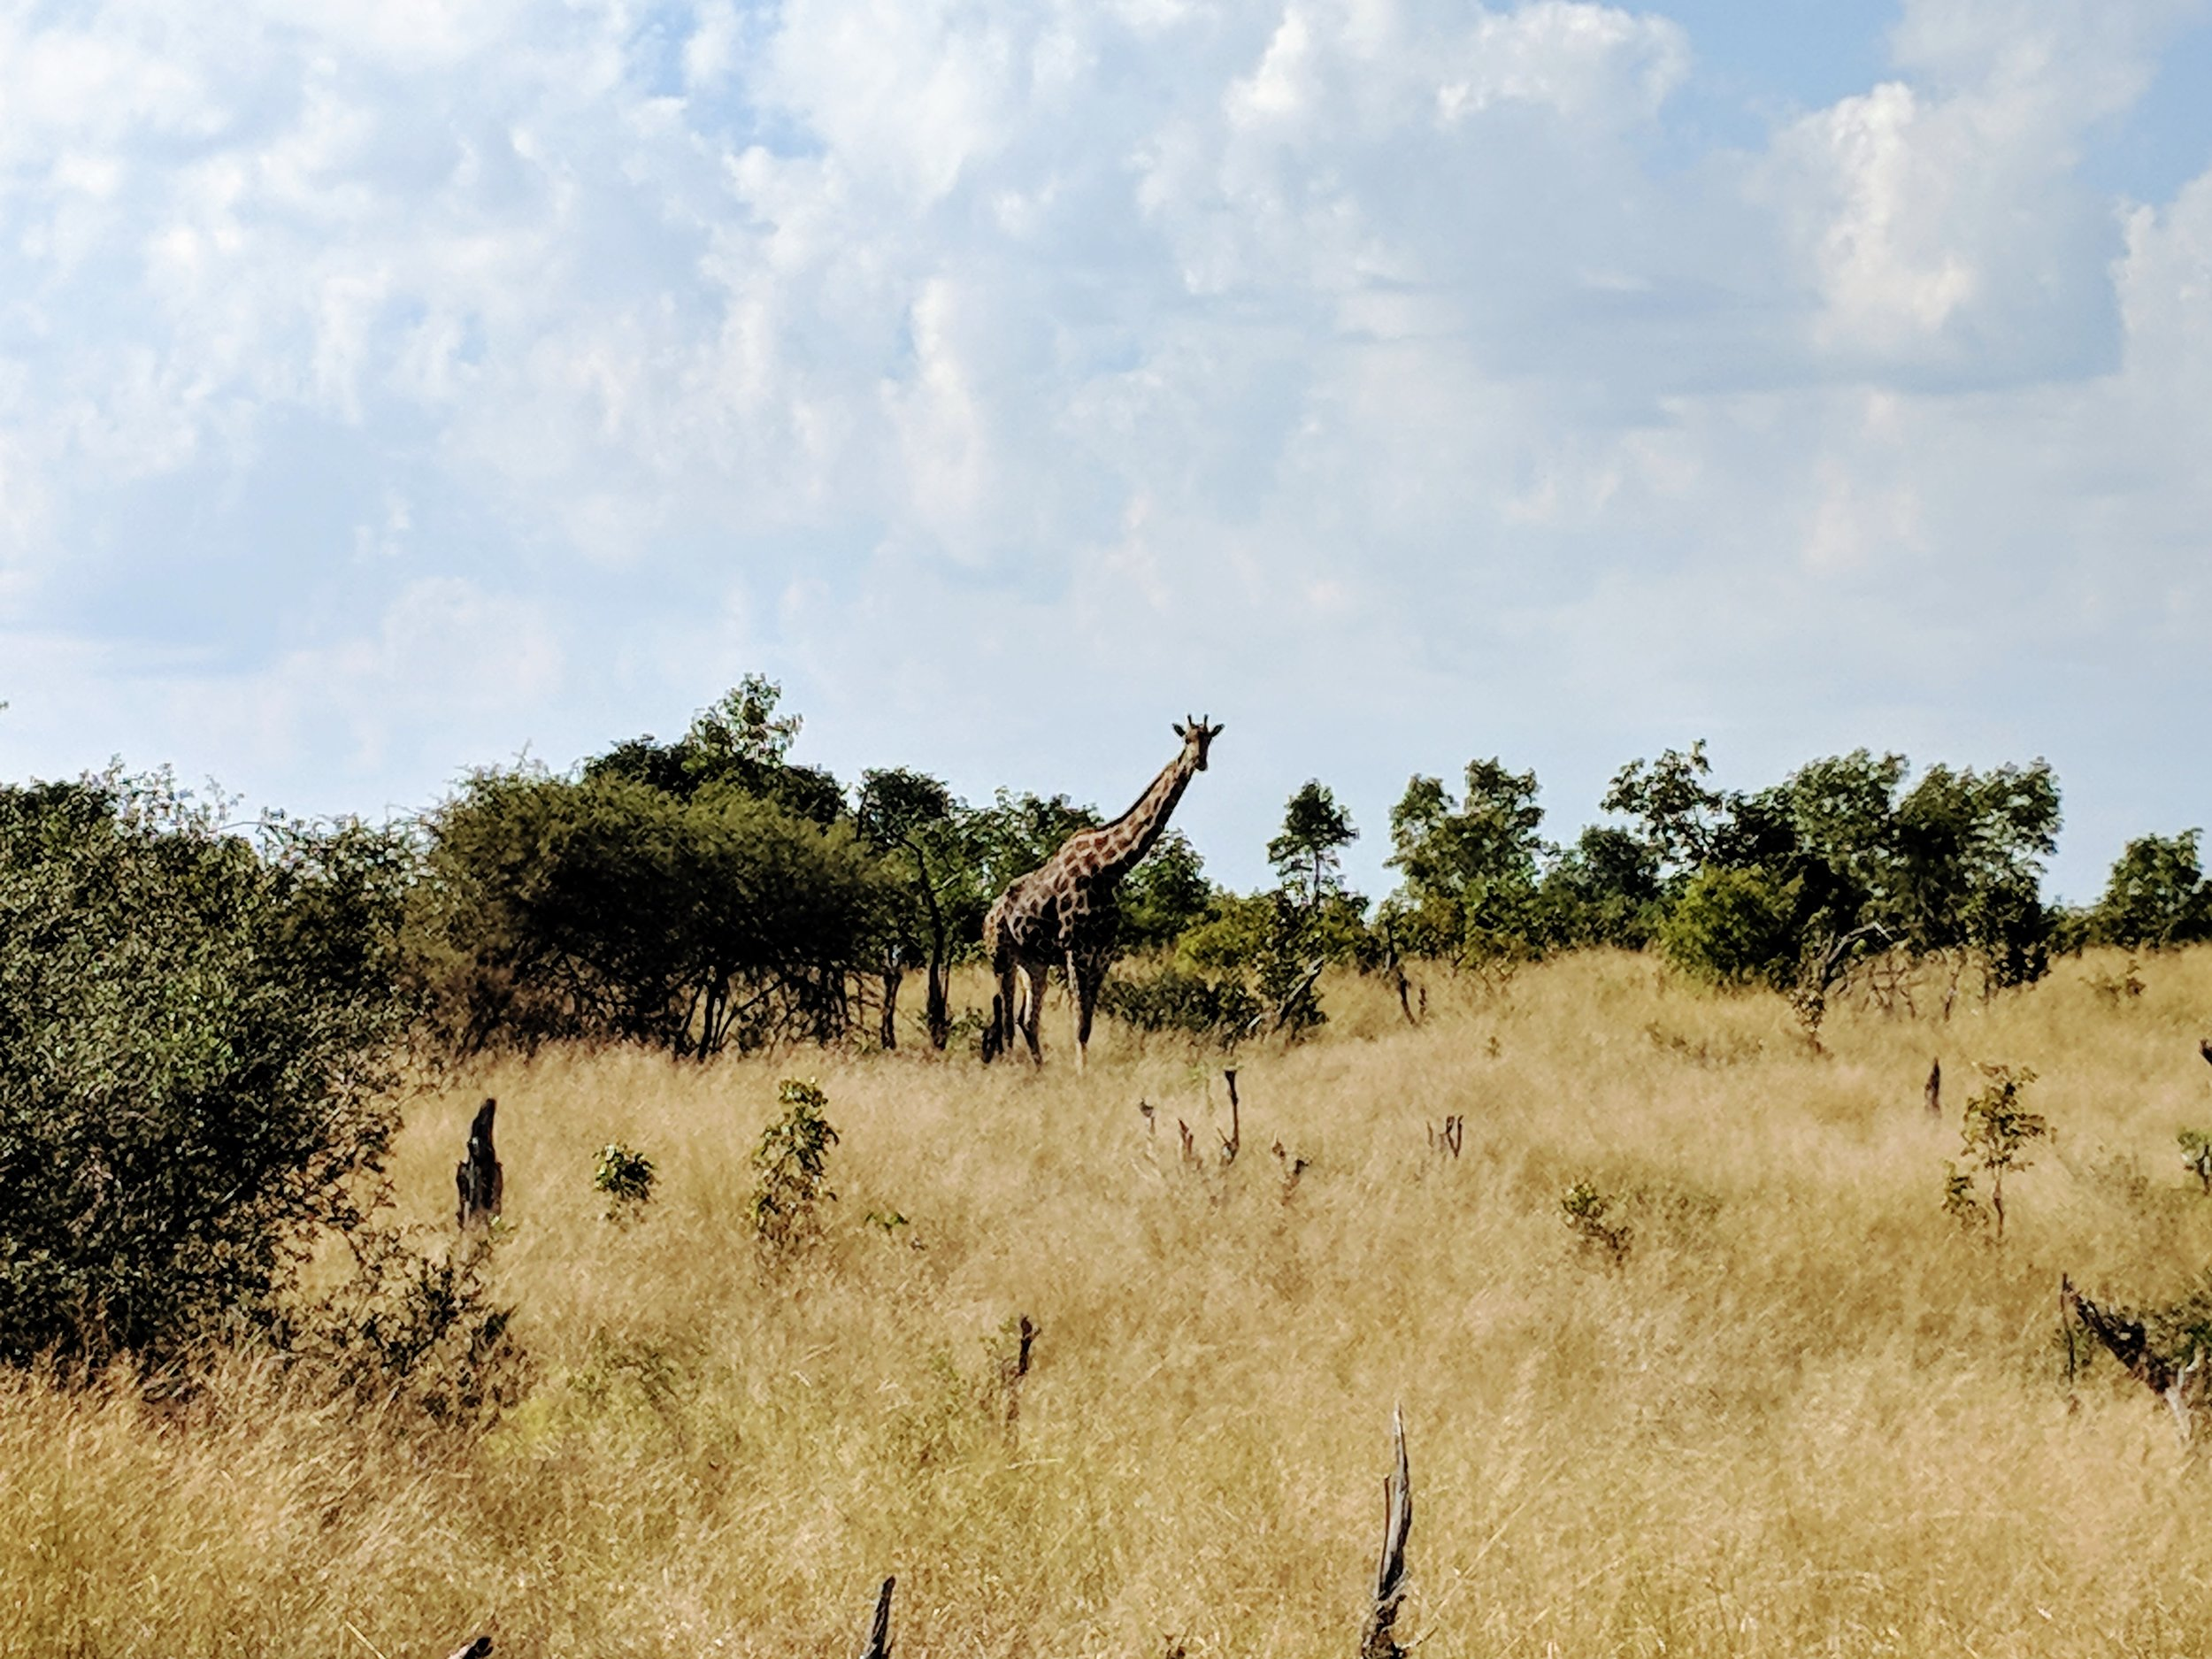 Giraffes were everywhere at Hwange National Park...one of my favorite animals to see!